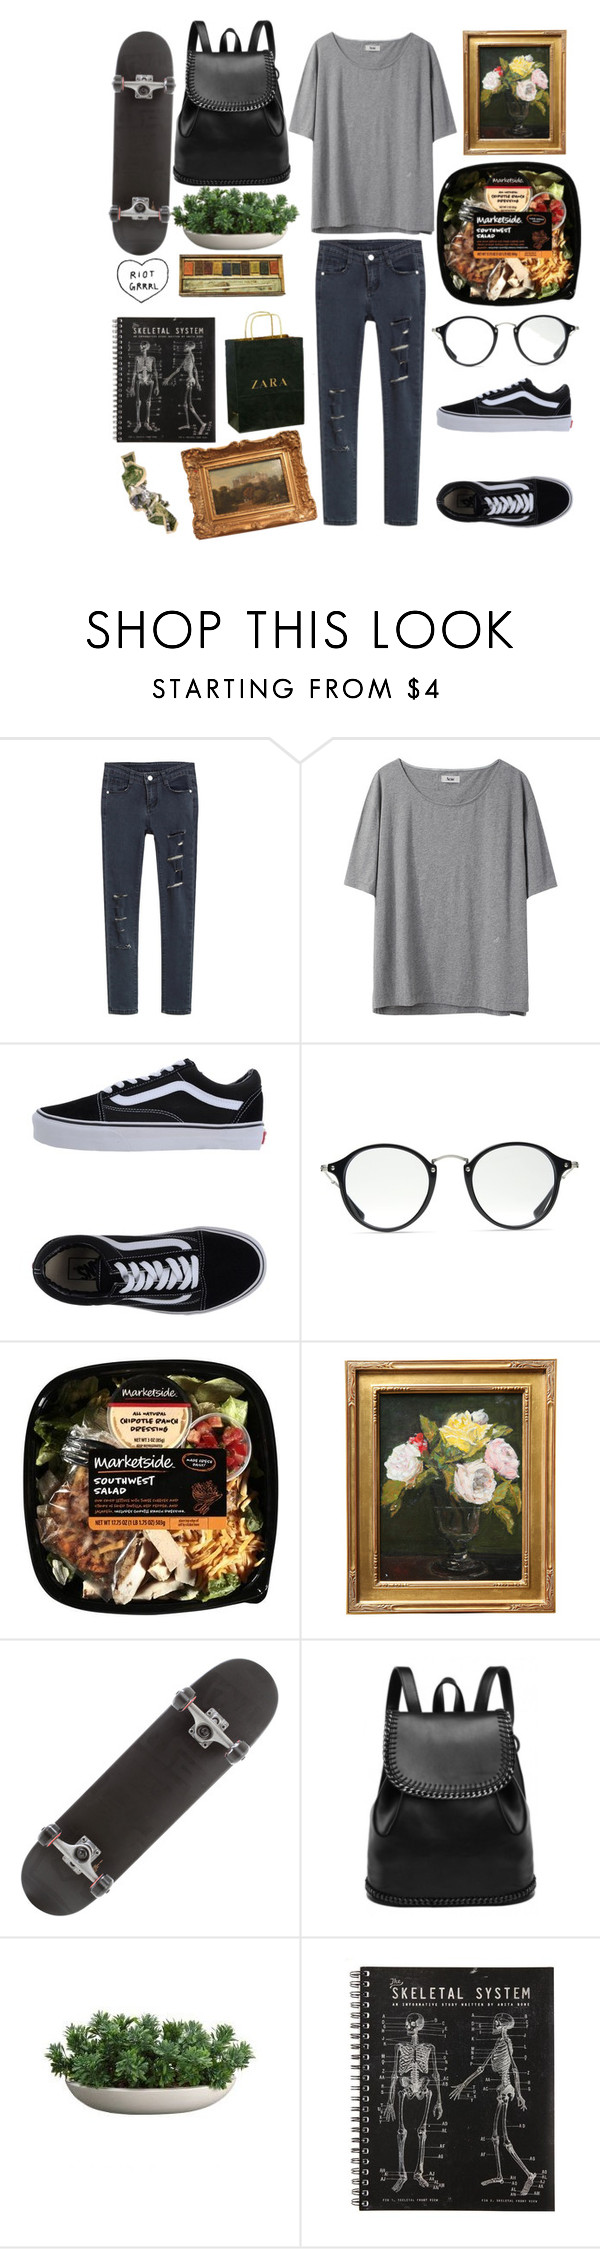 """""""830"""" by overy ❤ liked on Polyvore featuring Acne Studios, Vans, Ray-Ban, Zara and ...Lost"""